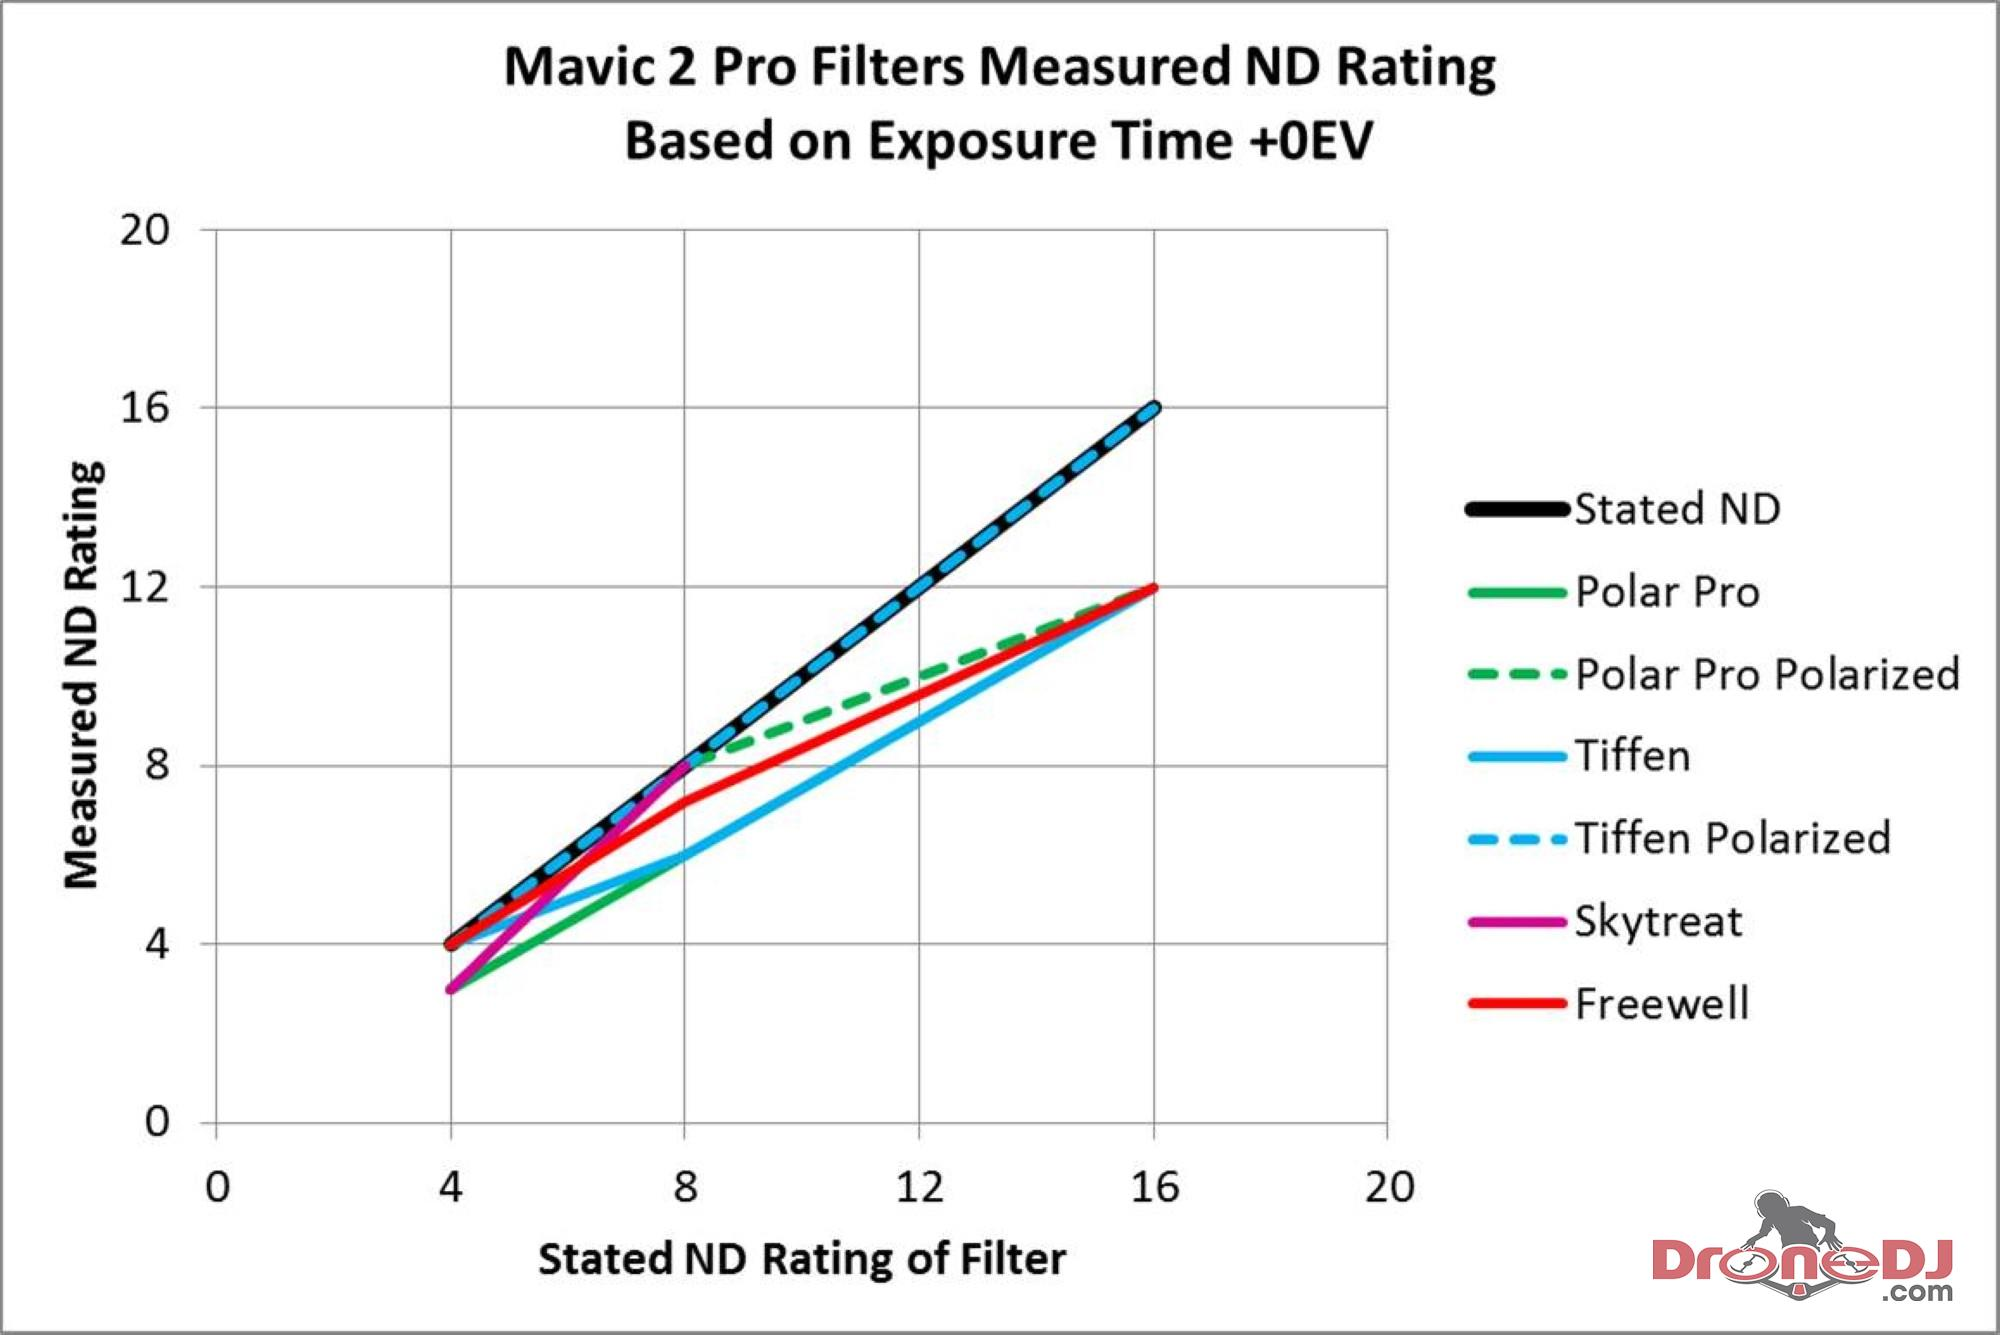 Mavic 2 Pro Filter ND Ratings